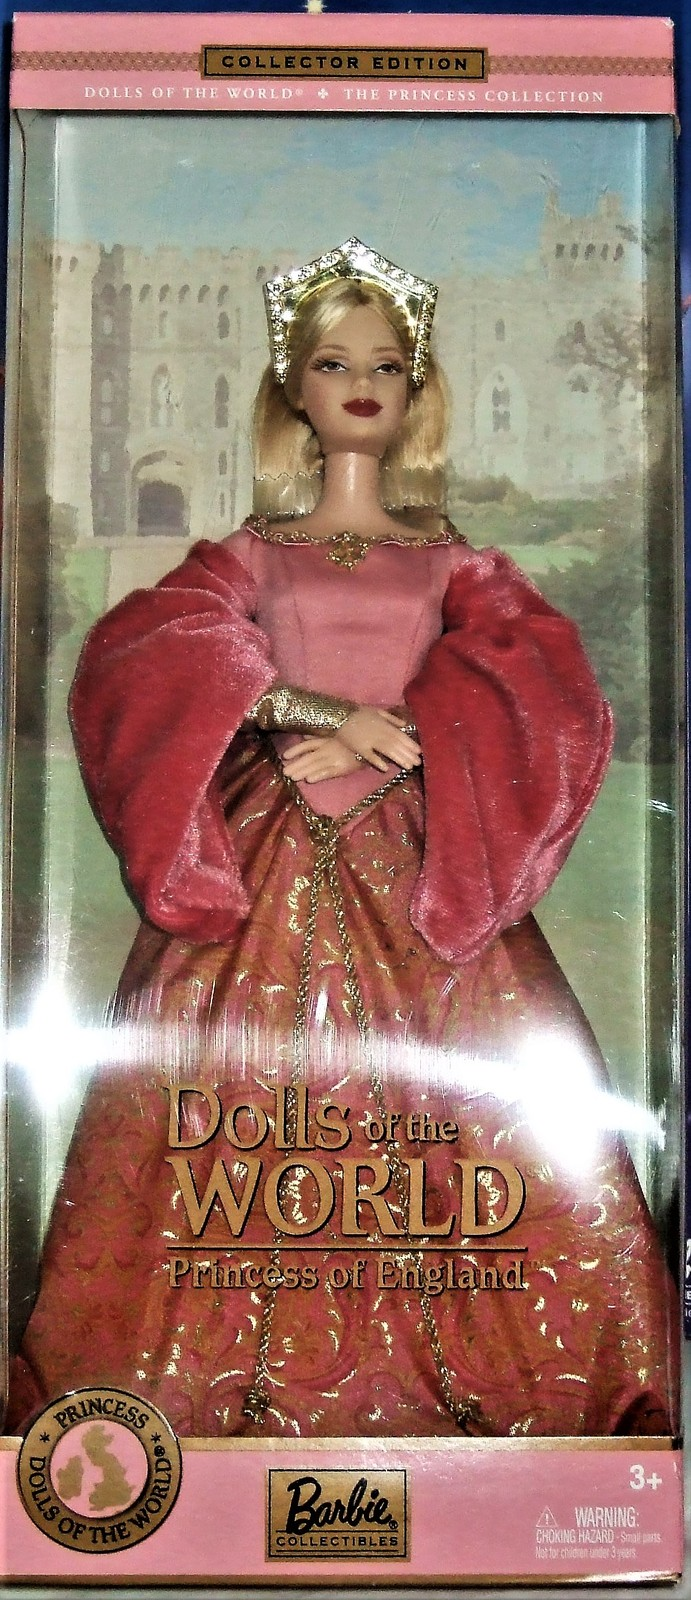 Barbie Doll - Dolls of The World Princess of England - The Princess Collection